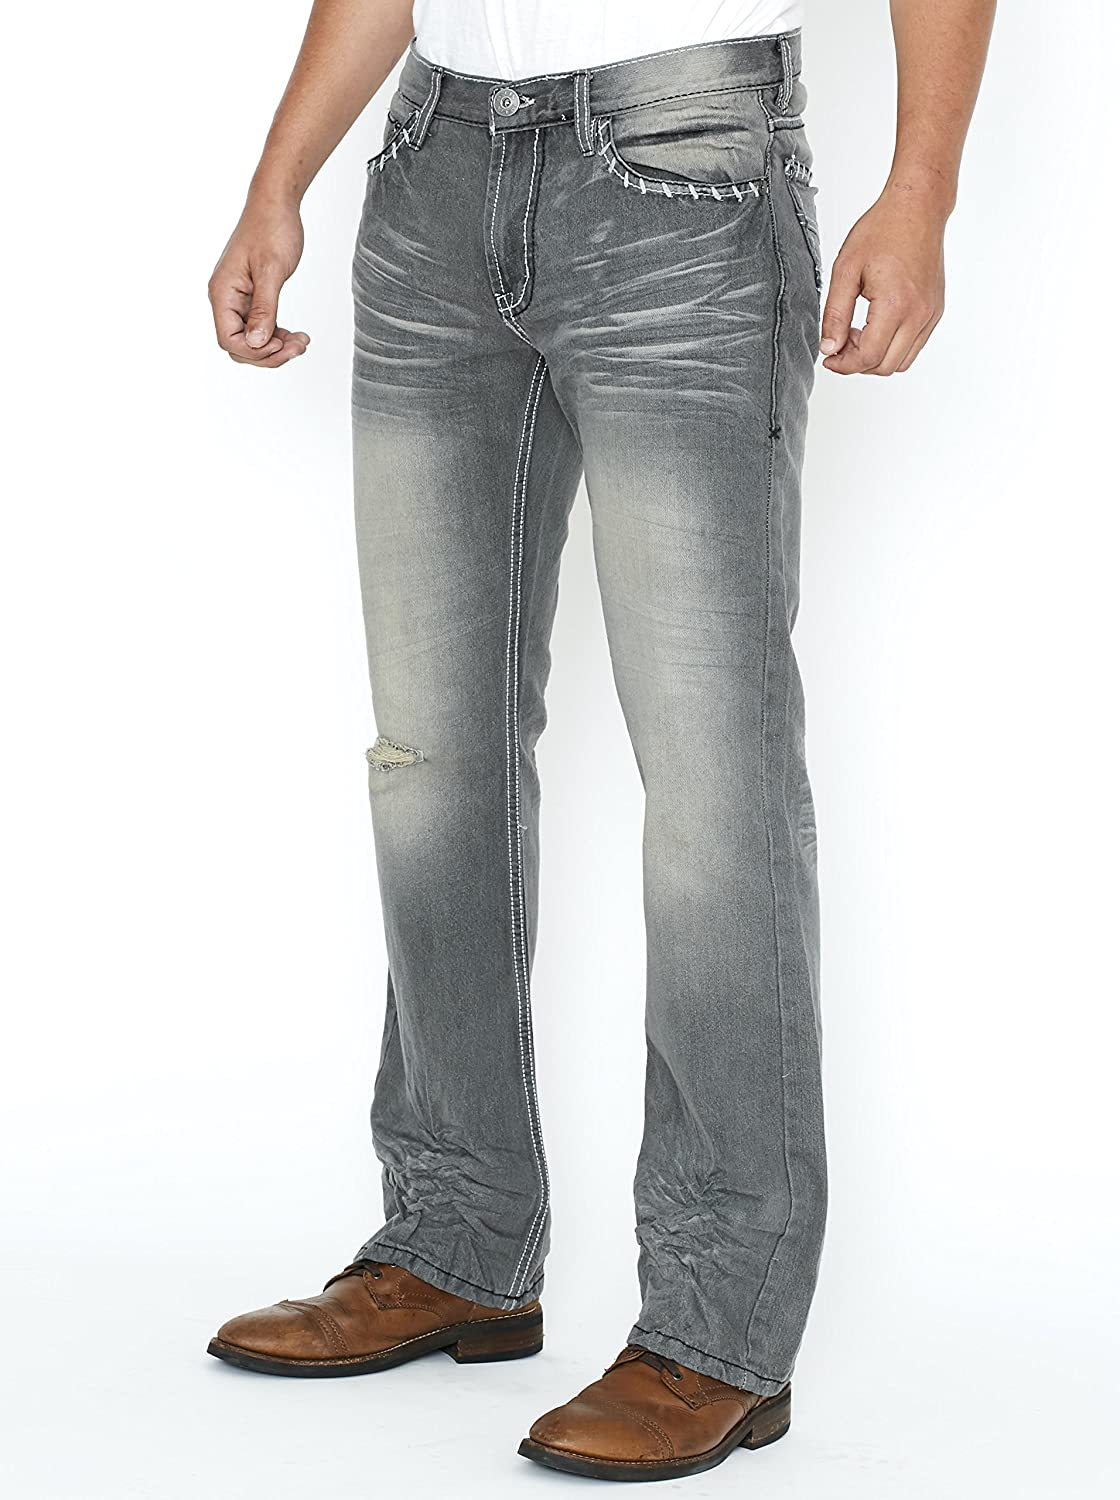 b9c51e9723e Slim Bootcut Men's Jeans - Faded and Ripped Denim Jean - Soft Comfort at  Amazon Men's Clothing store: